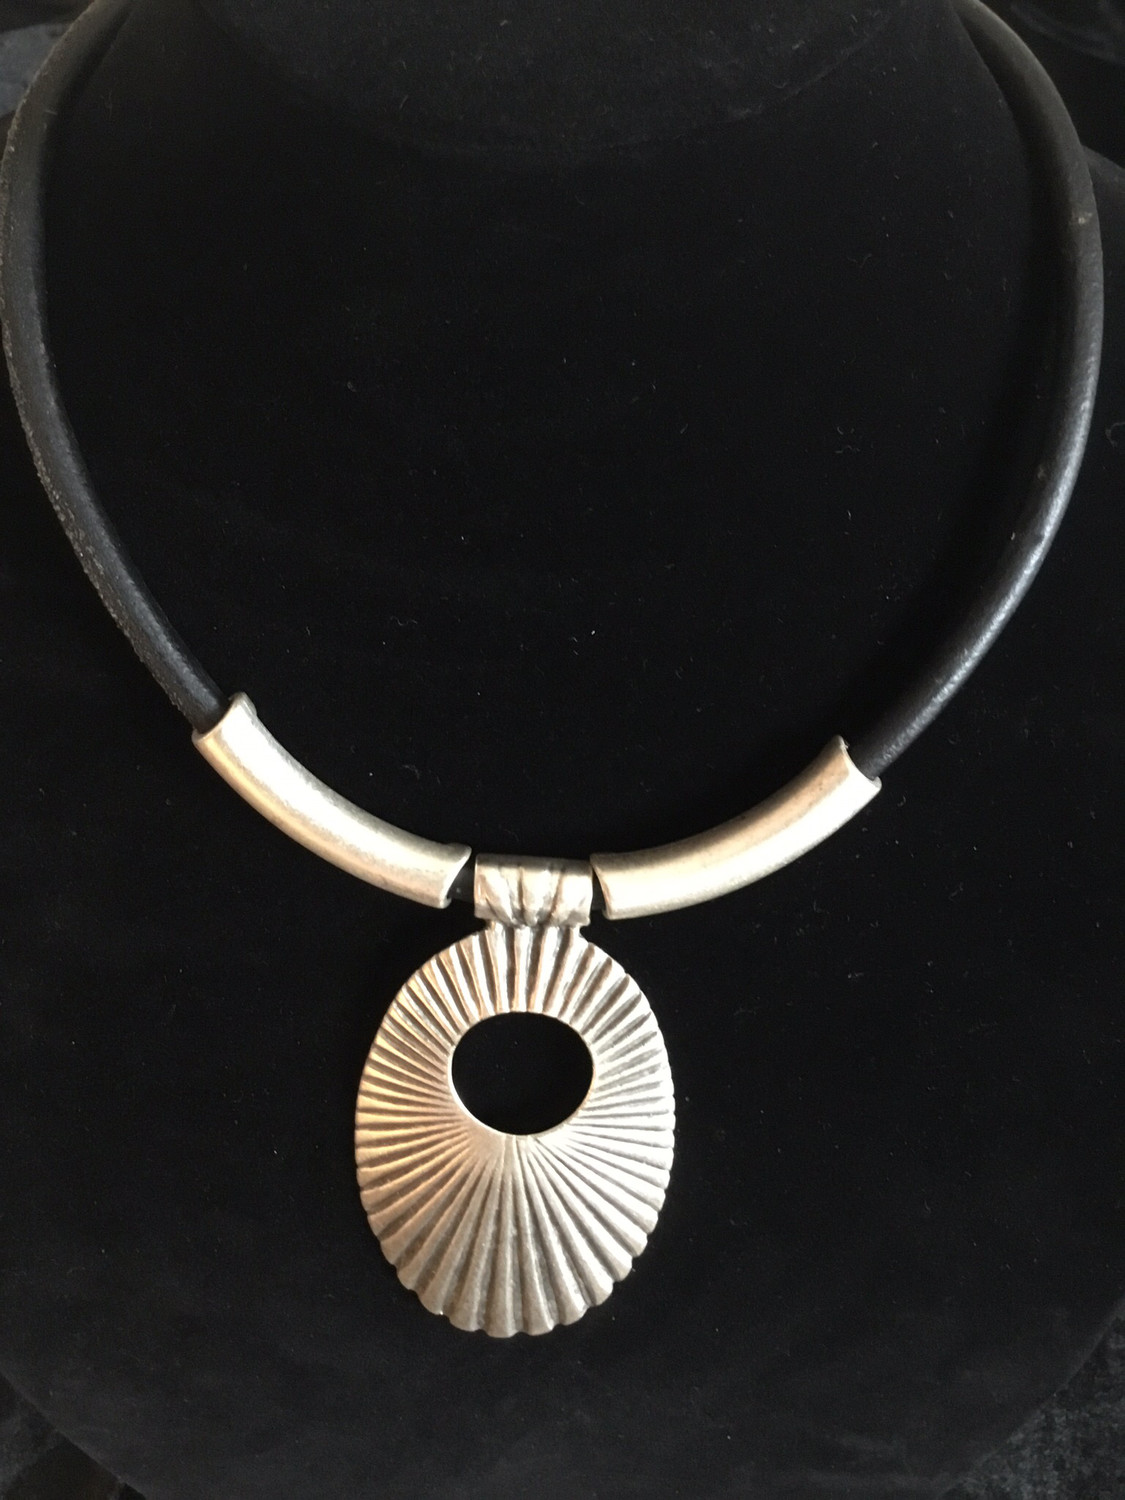 Pewter And Black Leather Short Necklace With Oval Designer Pendant